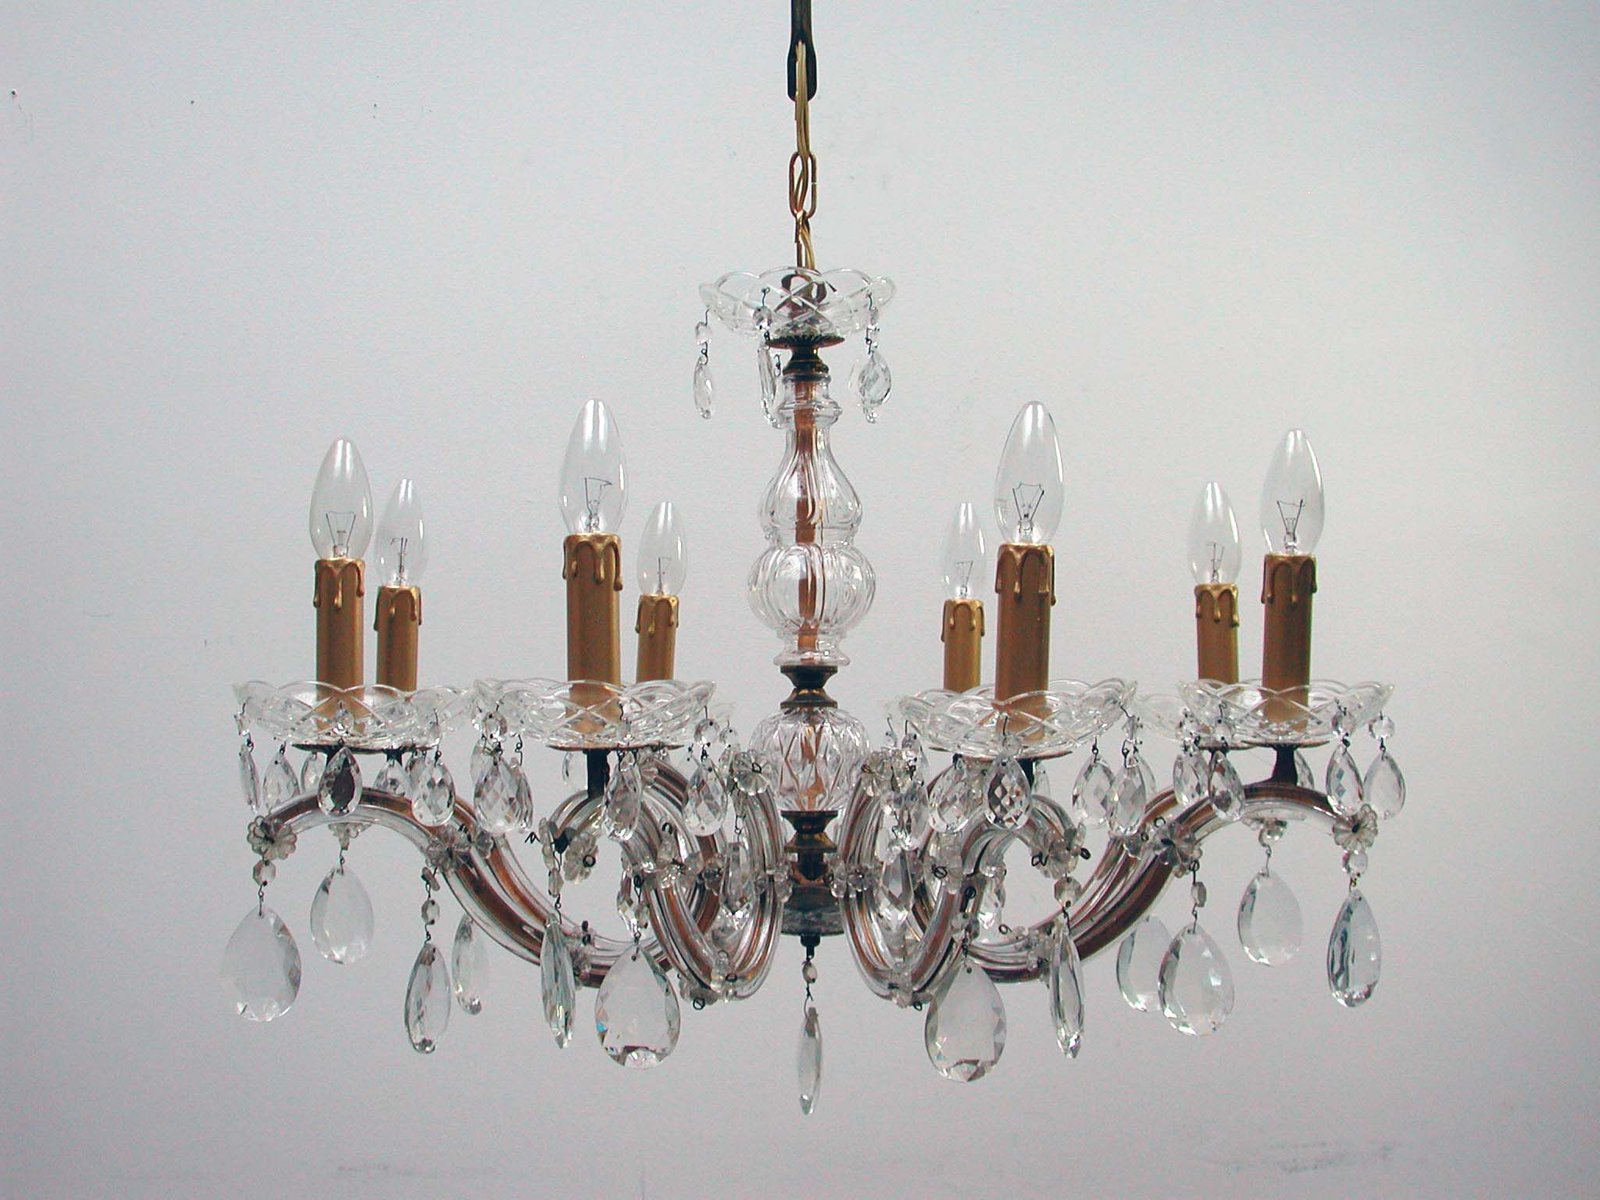 Italian brass and crystal 8 light chandelier 1950s for sale at pamono italian brass and crystal 8 light chandelier 1950s arubaitofo Image collections